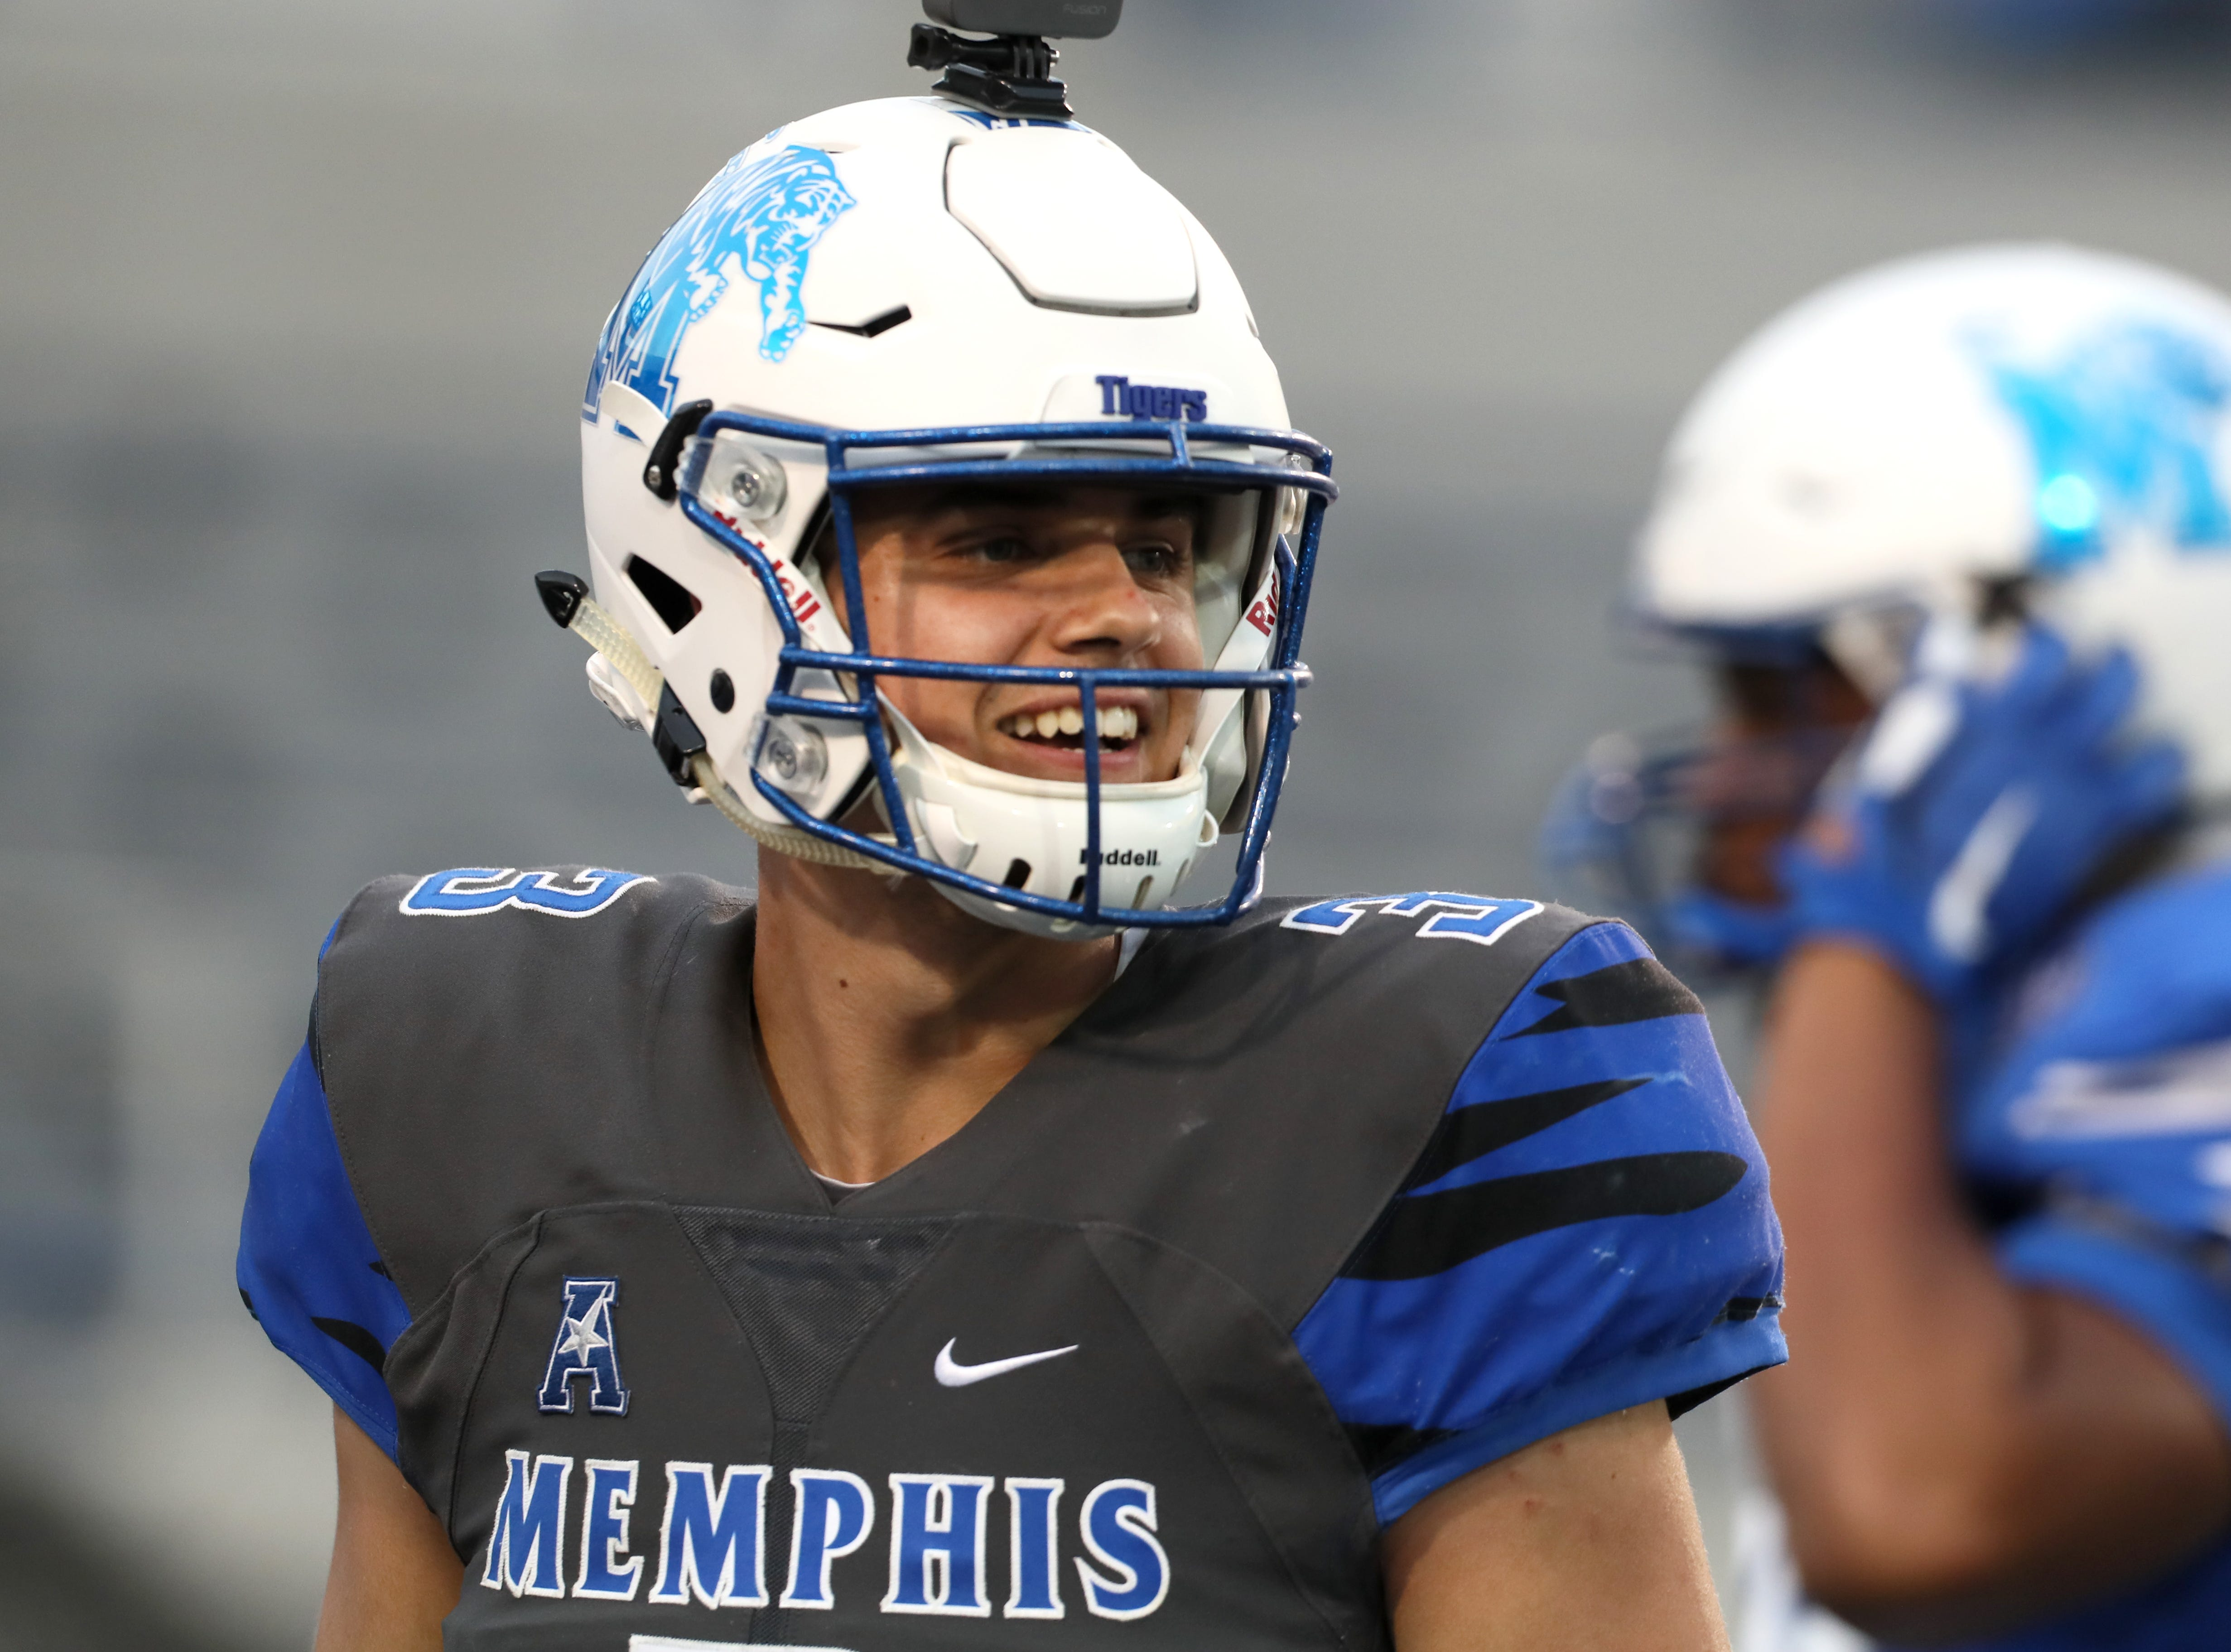 Memphis Tigers quarterback Brady White smiles after a touchdown play during their Friday Night Stripes spring game at Liberty Bowl Memorial Stadium on Friday, April 12, 2019.